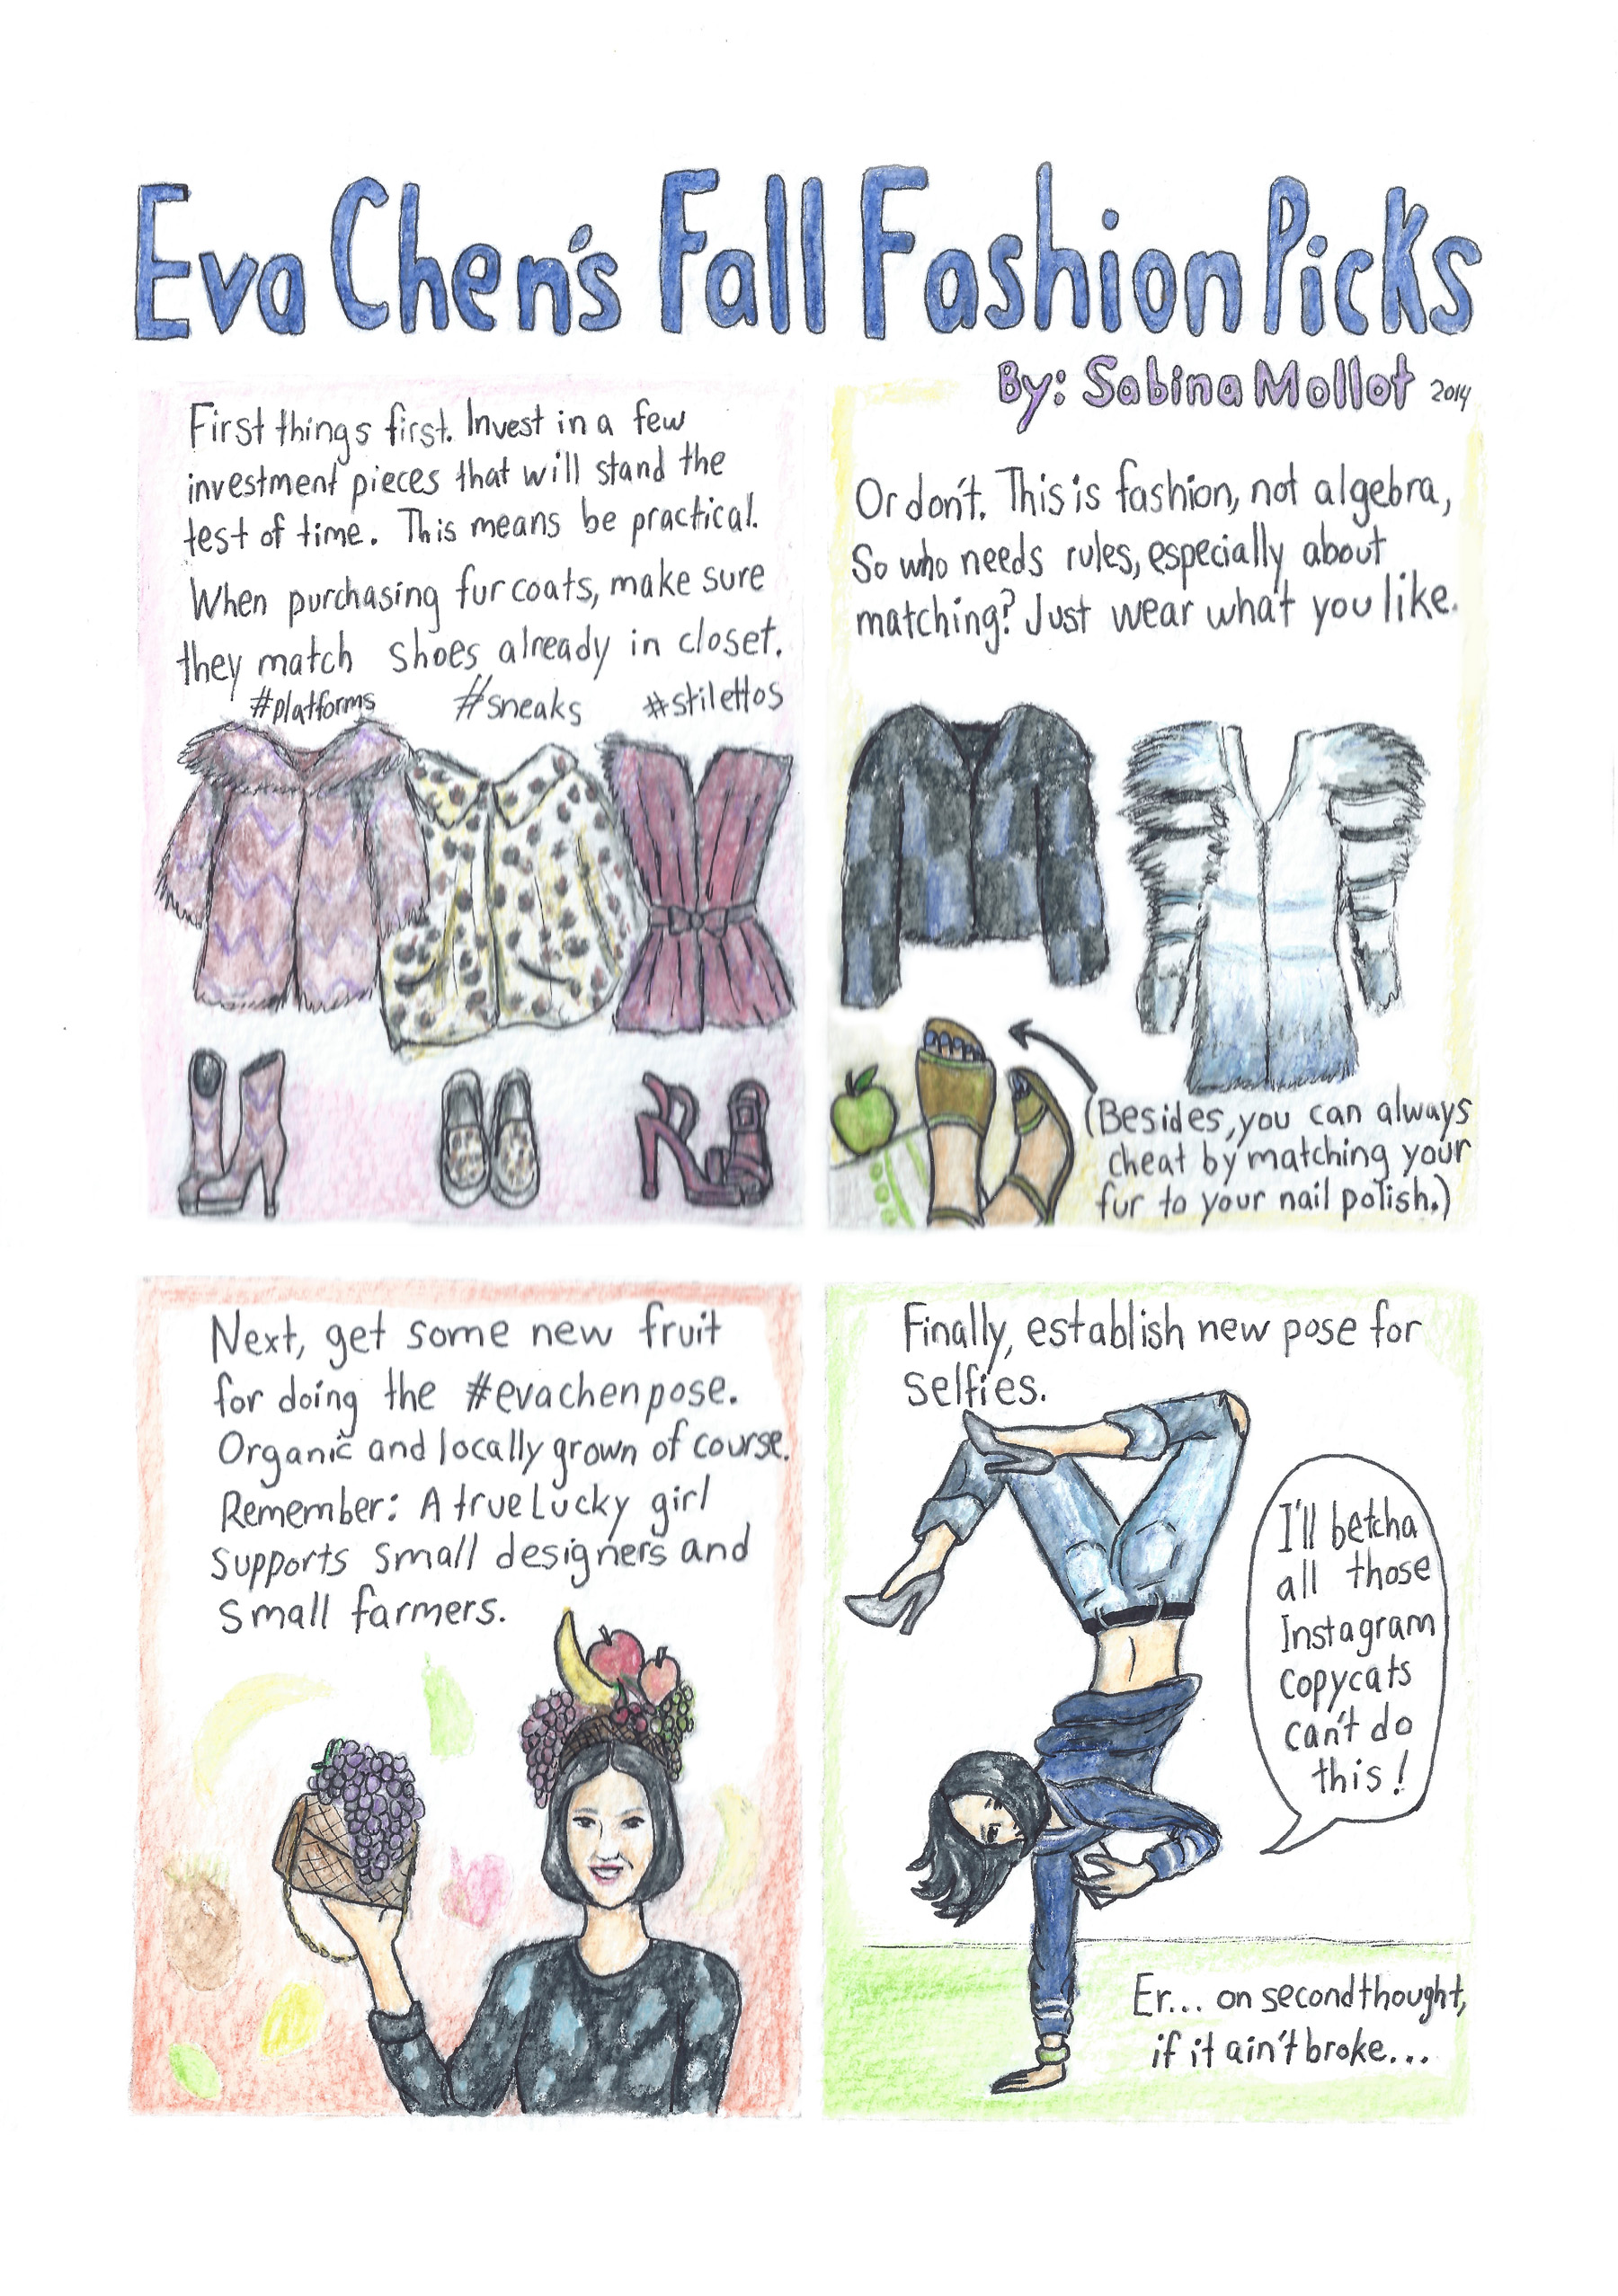 Comic: My predictions of Eva Chen's Fall Fashion Picks